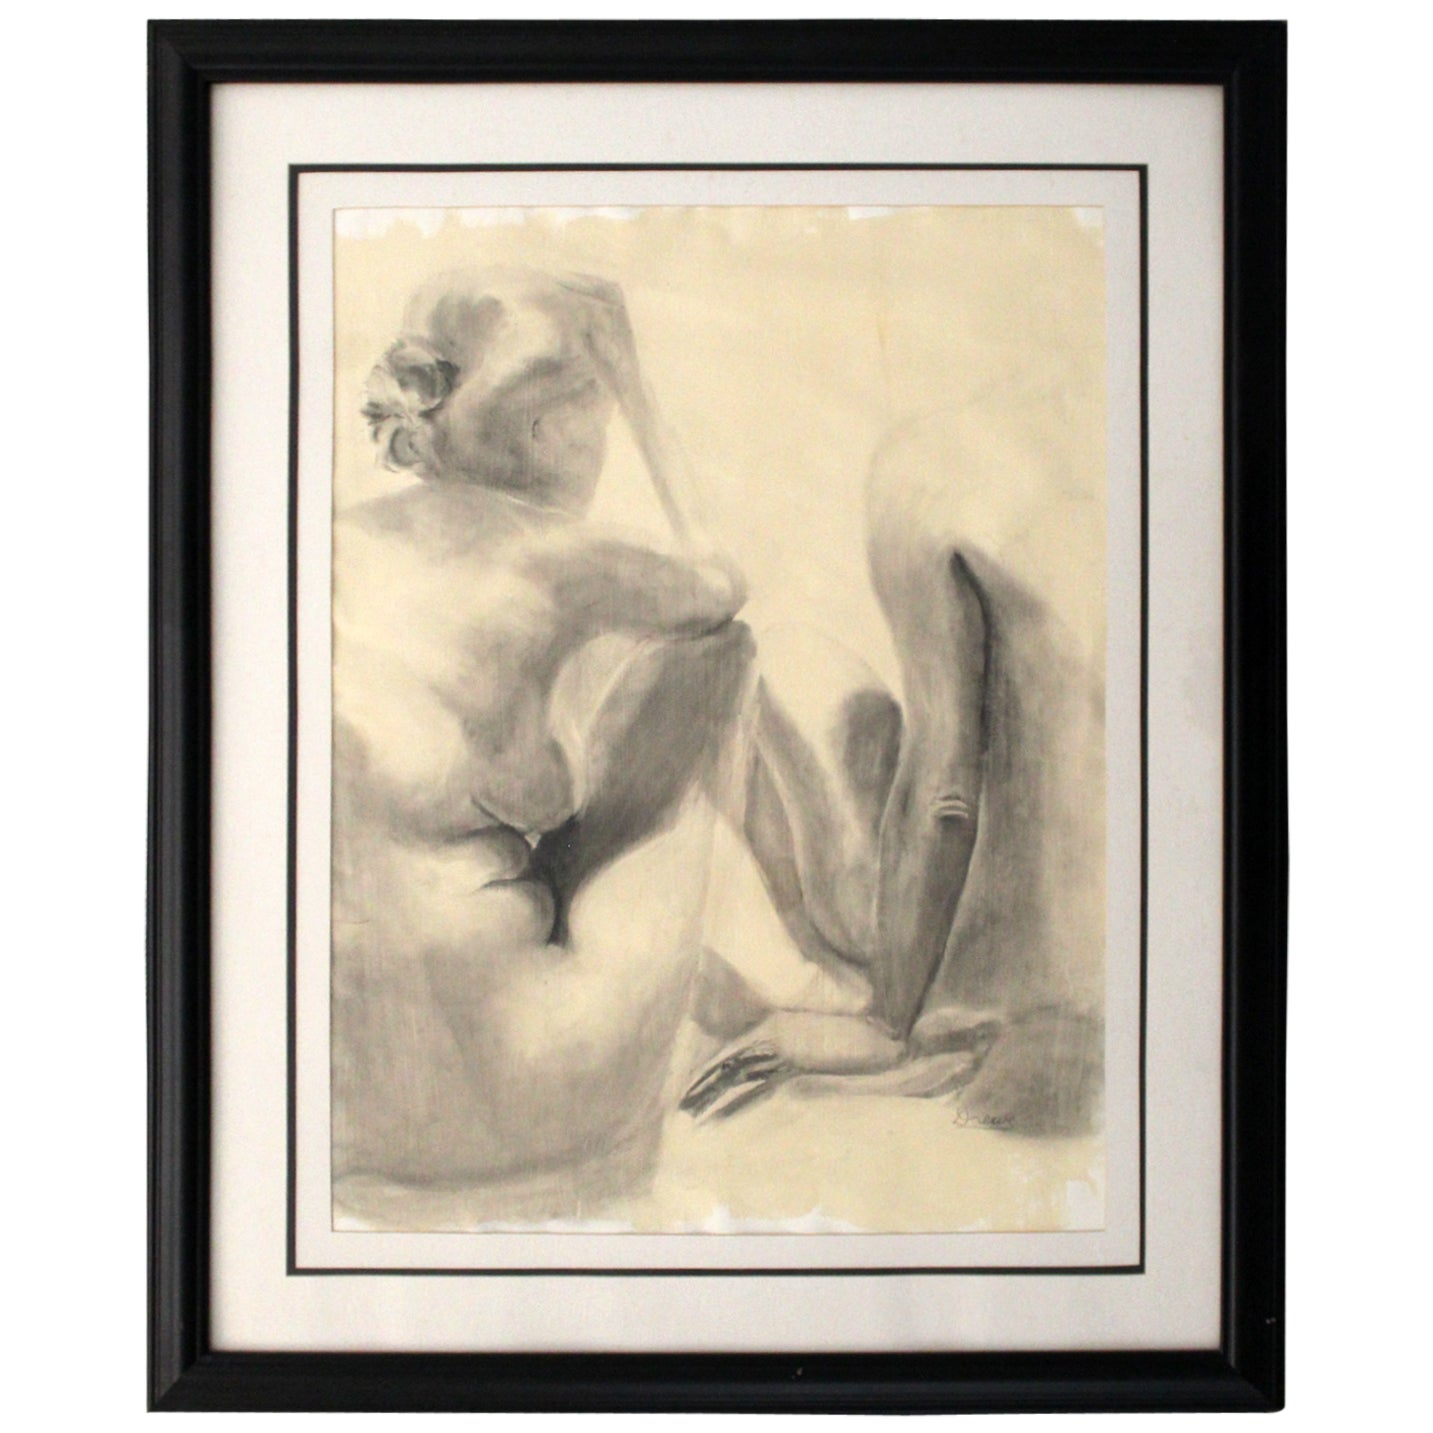 Contemporary Modern Framed Charcoal Drawing Signed Drewe Nude Figure Drawing